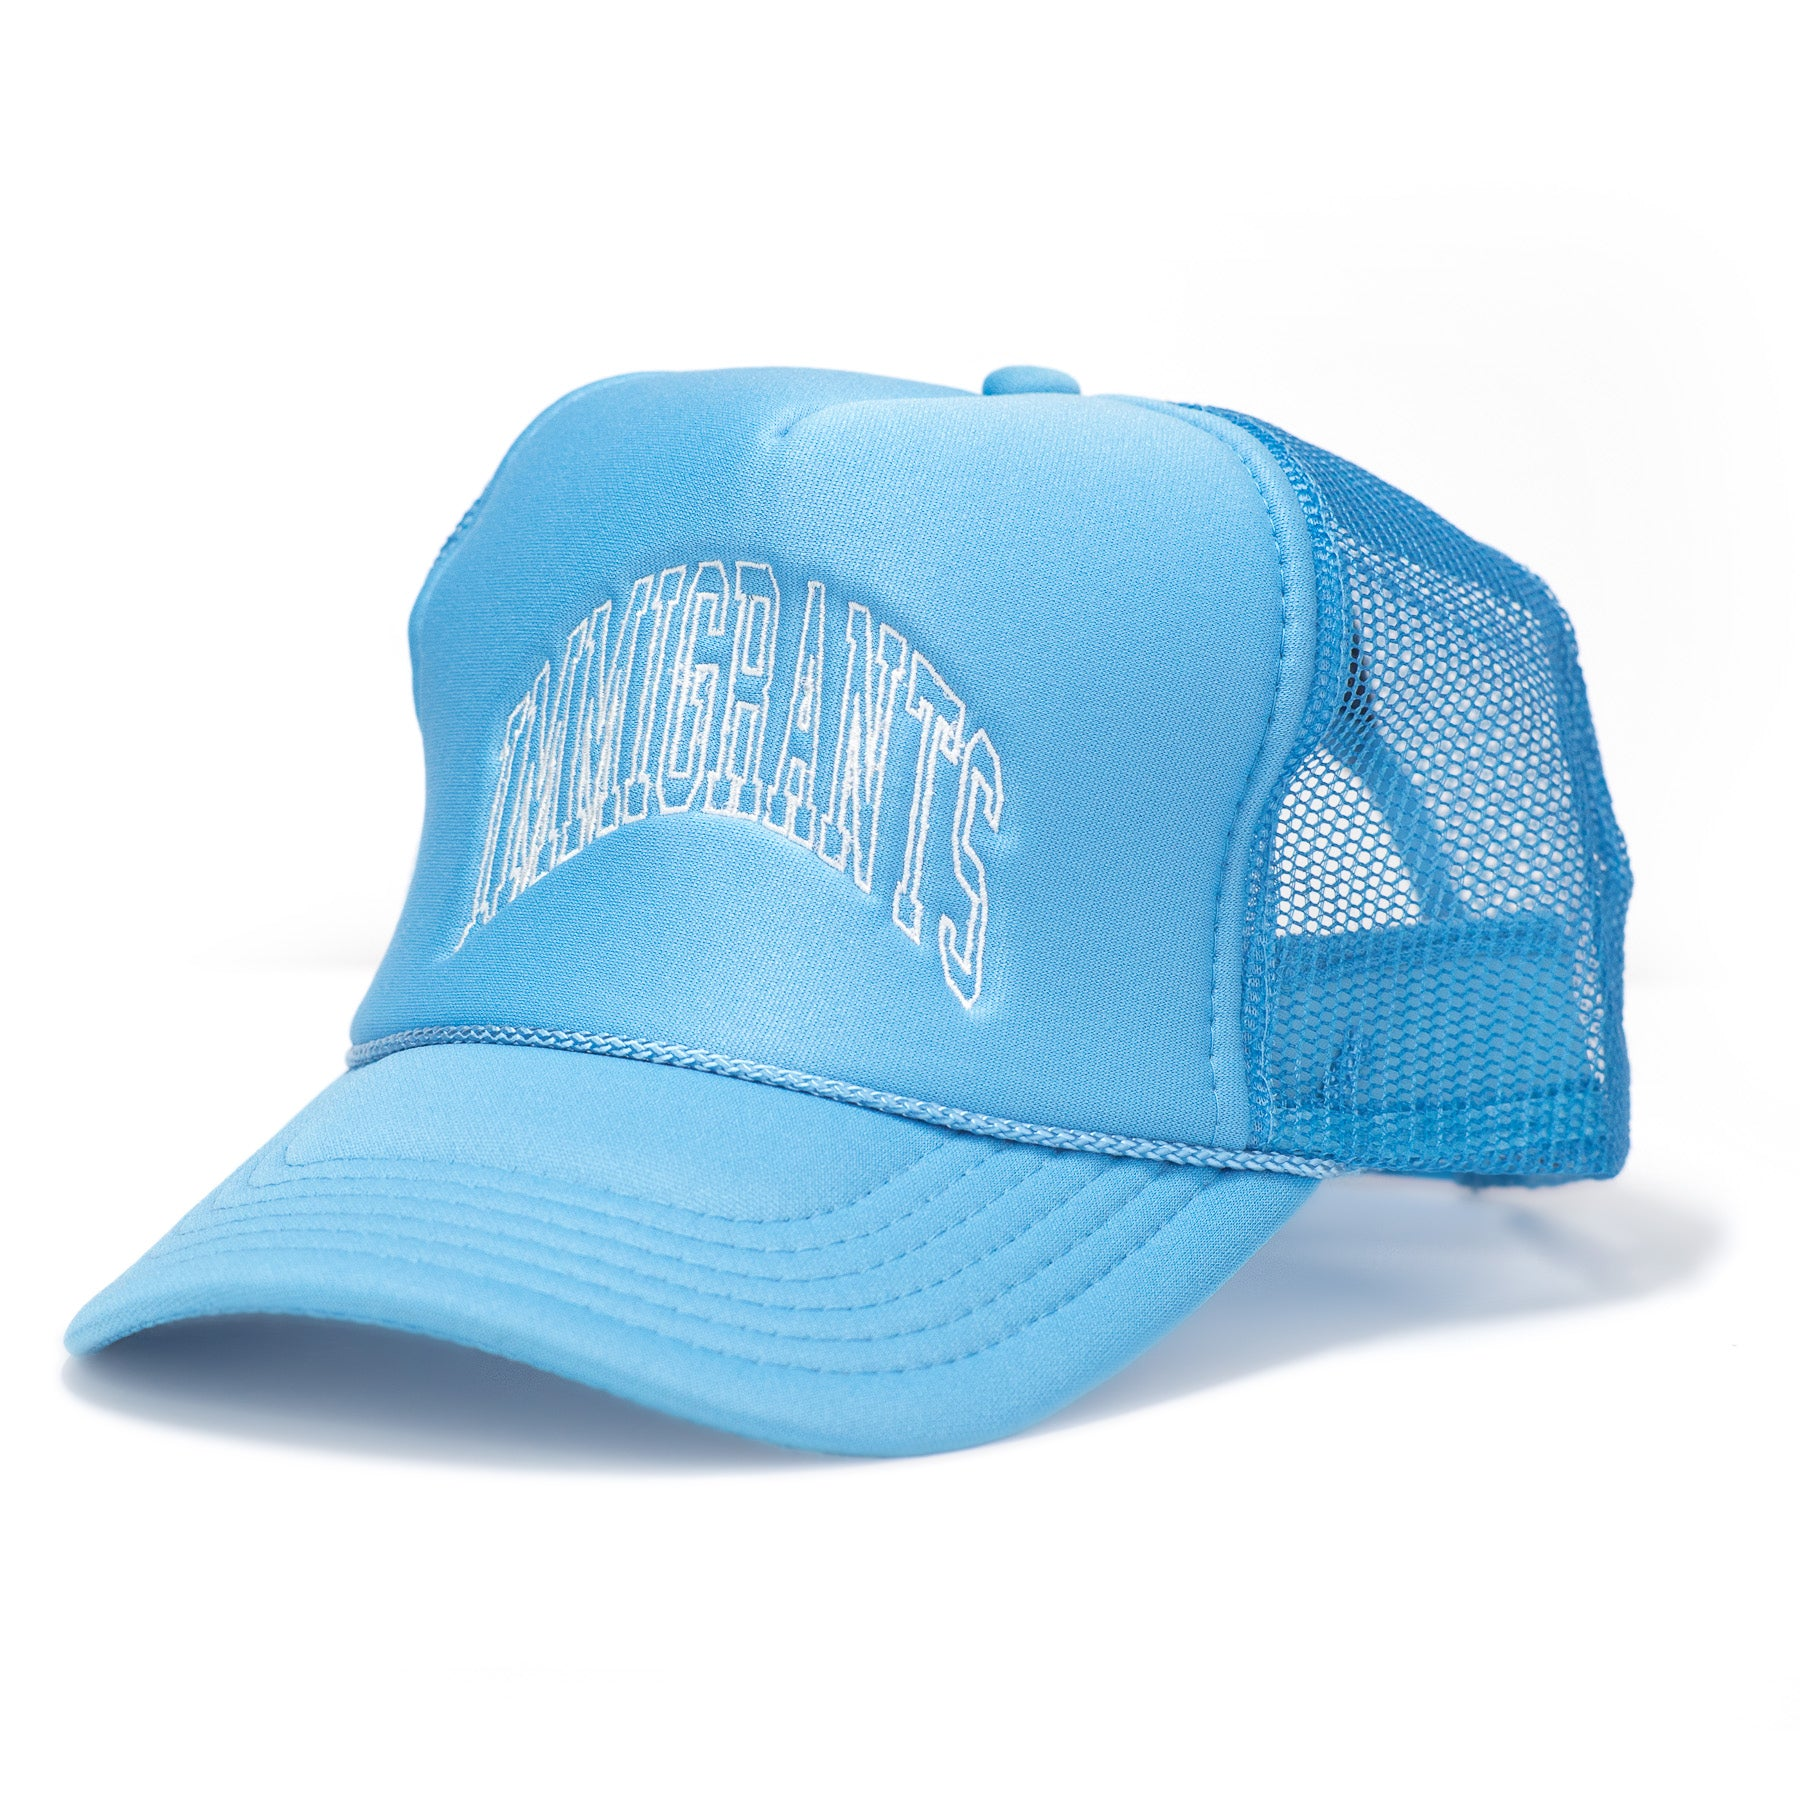 IMMIGRANTS TRUCKER HAT - BLUE